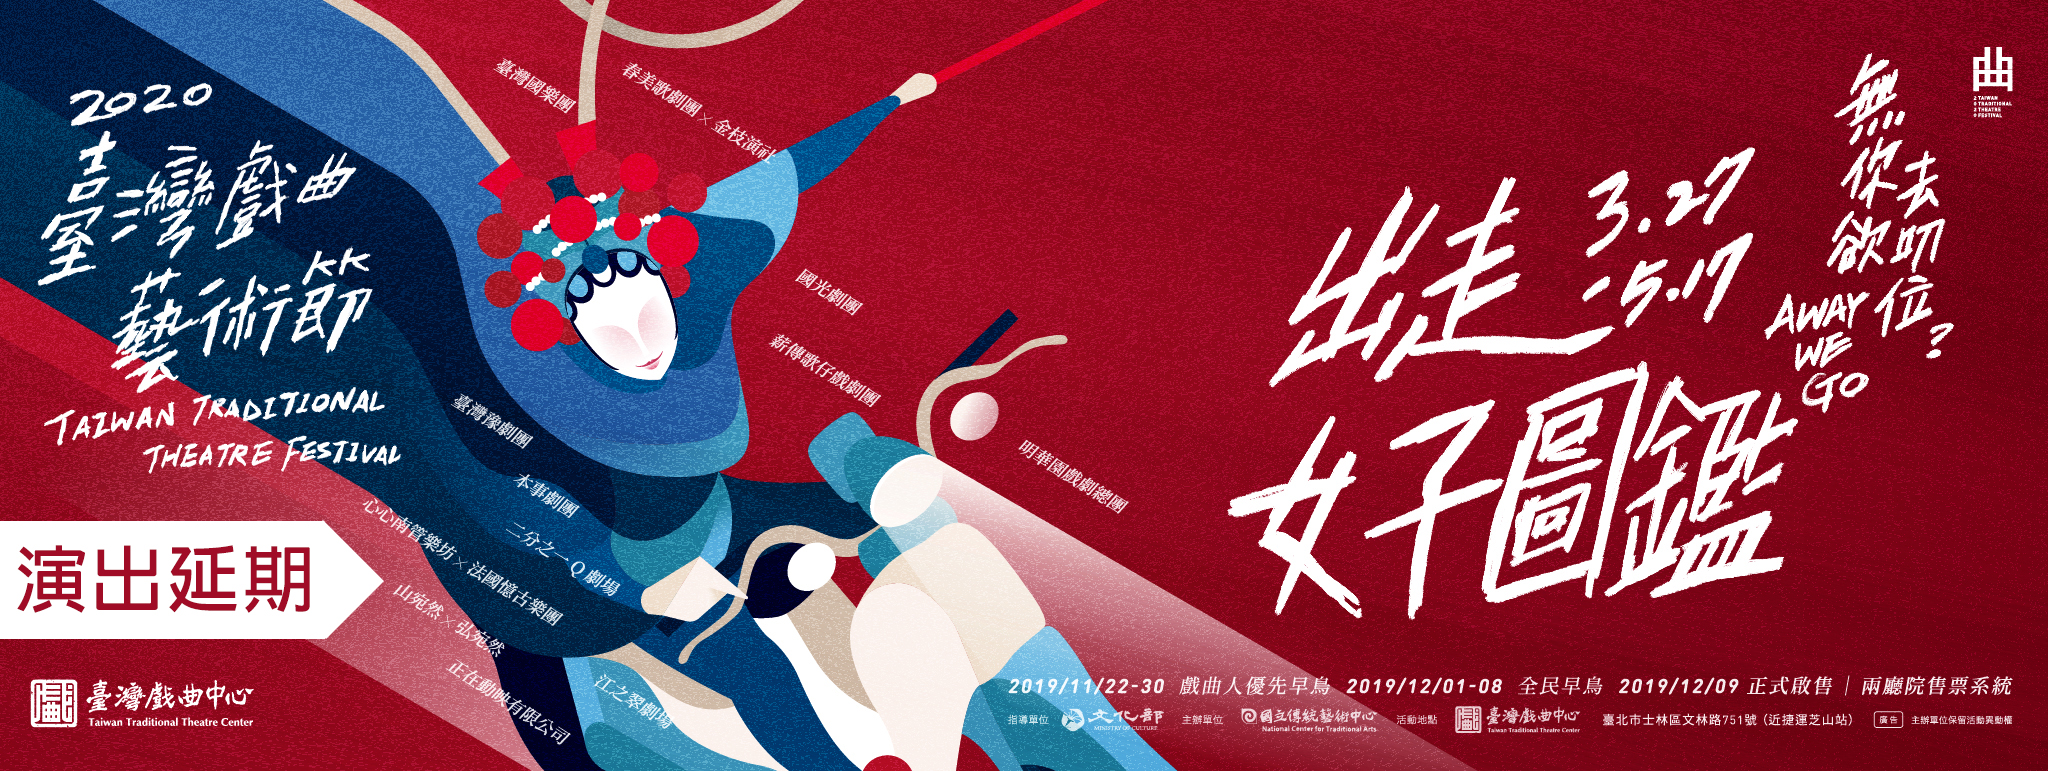 March's Taiwan Traditional Theatre Festival suspended for COVID-19